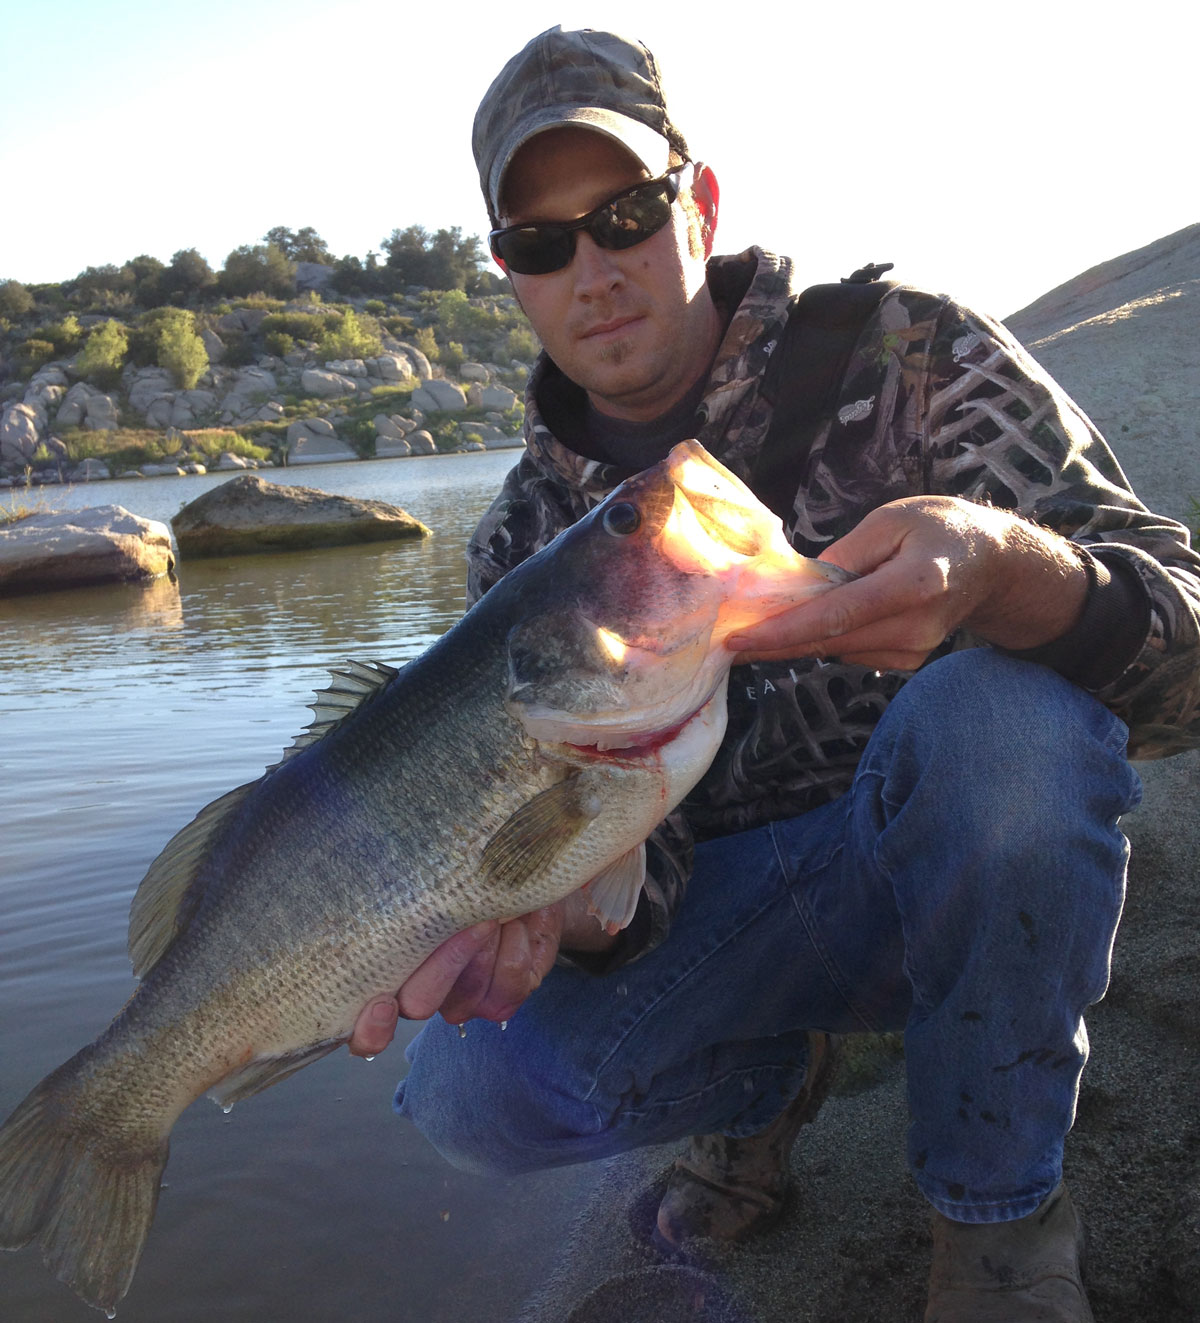 Lake morena fish report 6 20 15 for Lake fishing report